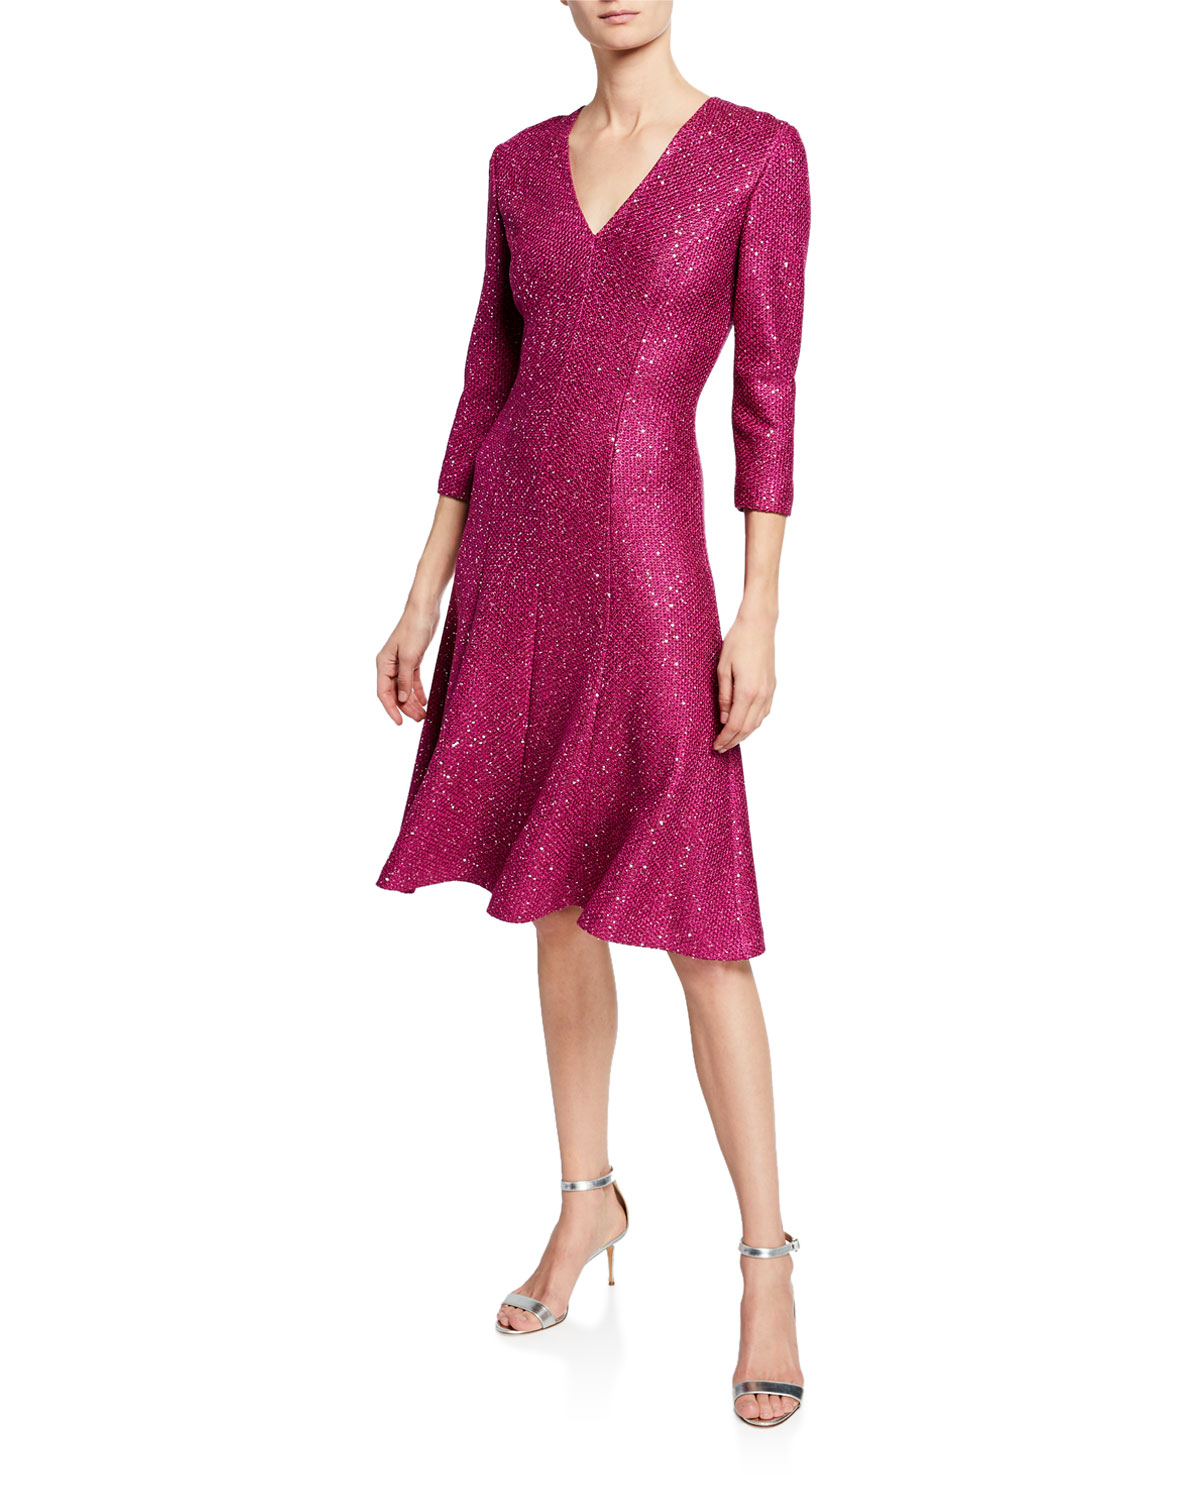 0ed8b1b5e4c7 St. John Collection Luxe Sequin V-Neck 3 4-Sleeve Tuck-Knit Dress ...